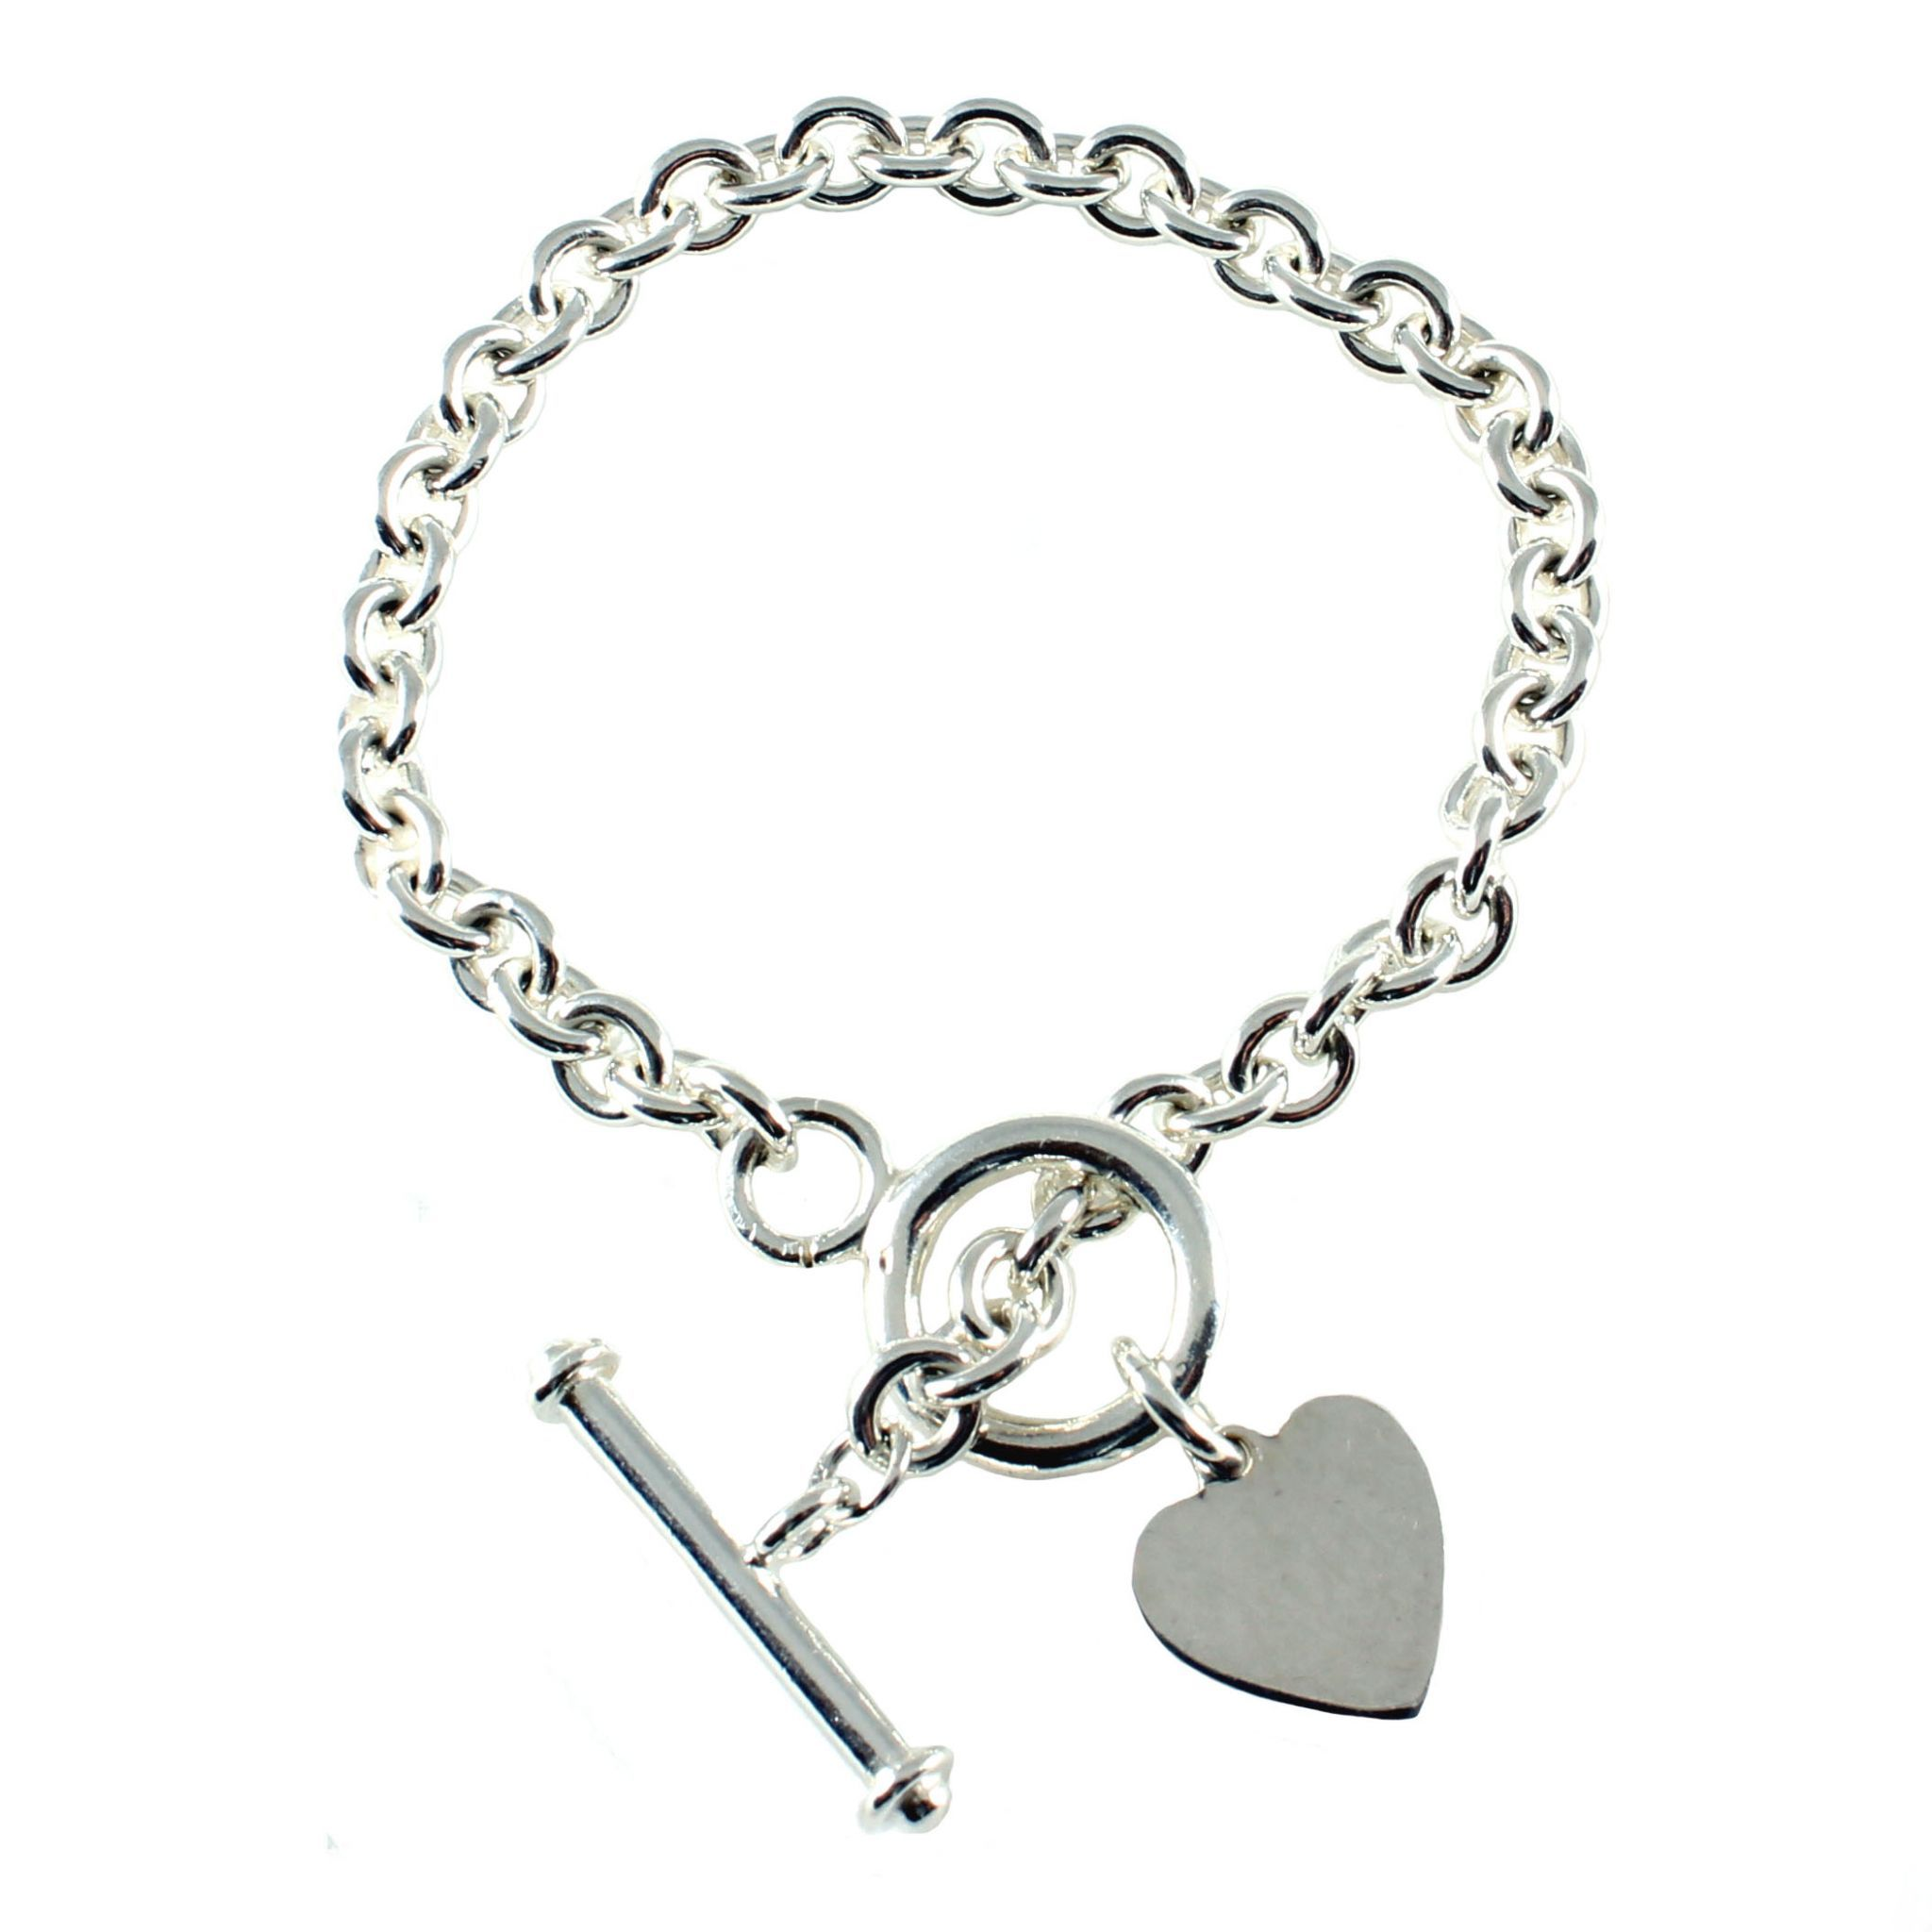 bracelets bead ball silver with slider charm bangles jewellery sterling heart bracelet